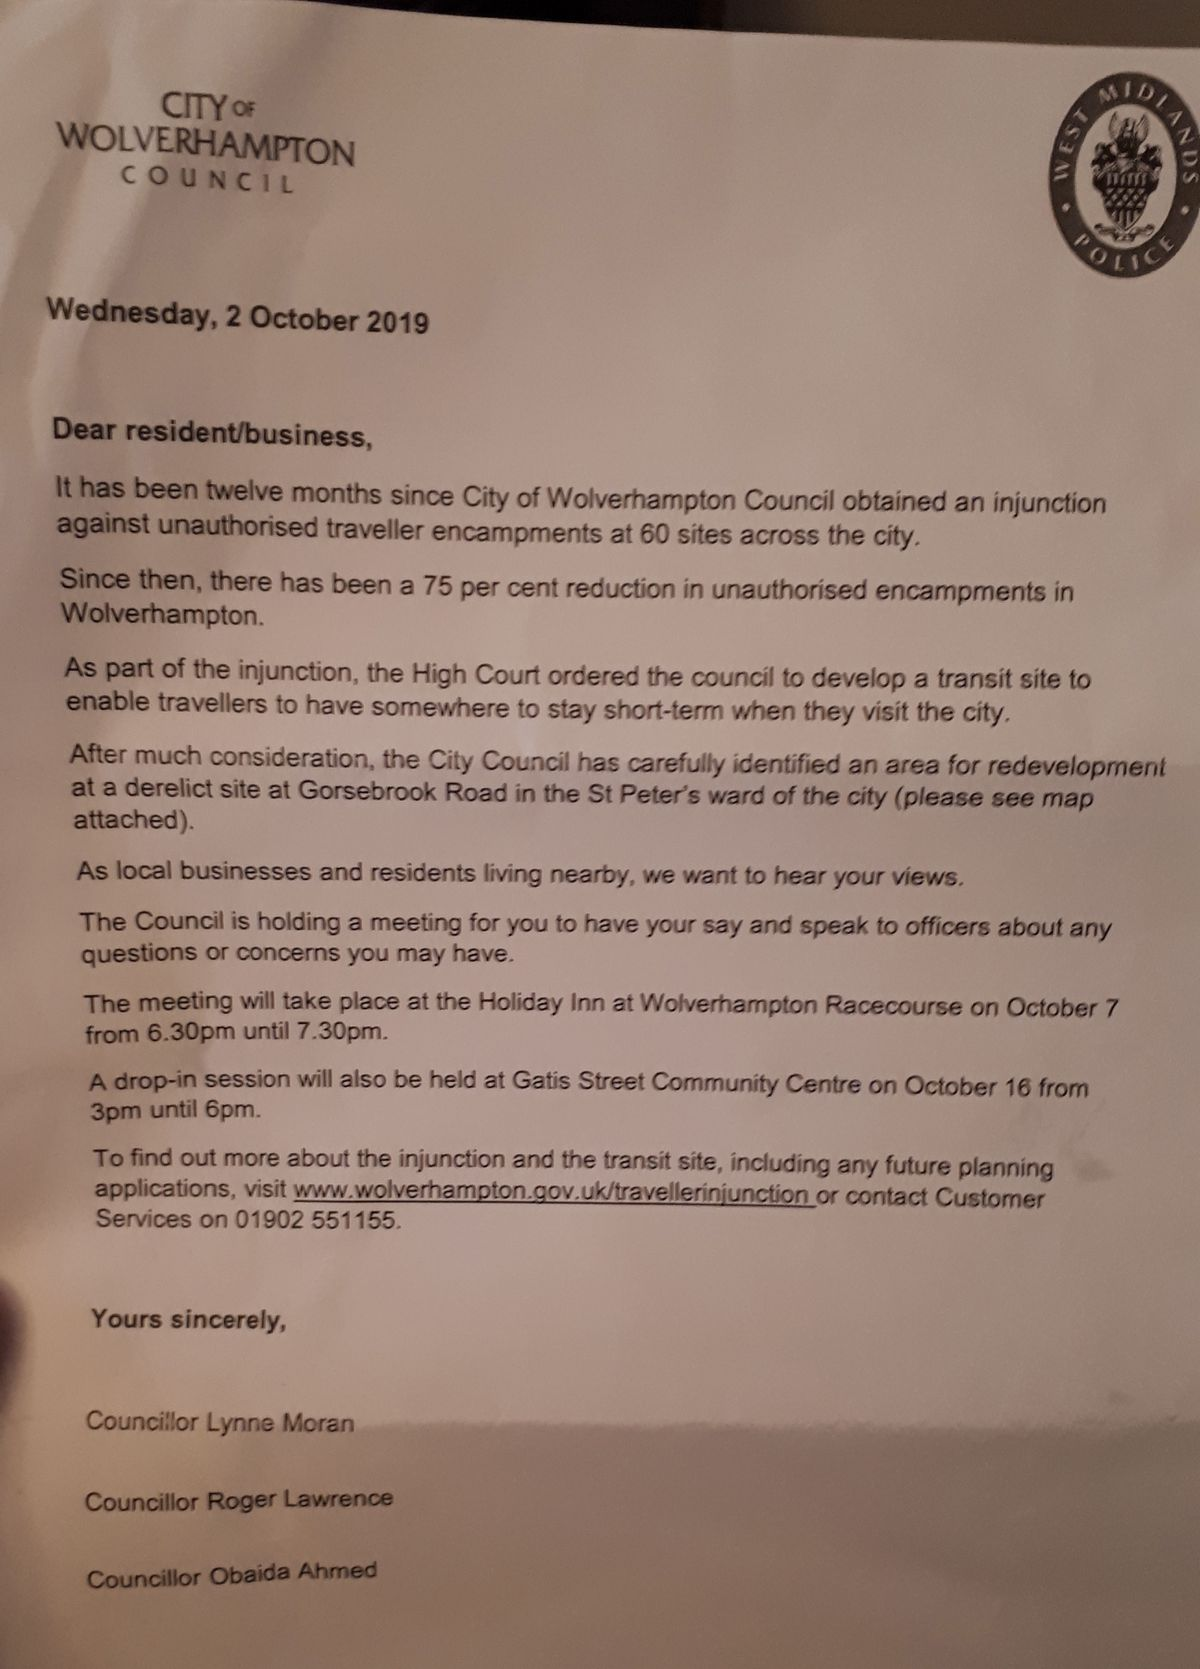 The letter sent to residents informing them of the plans